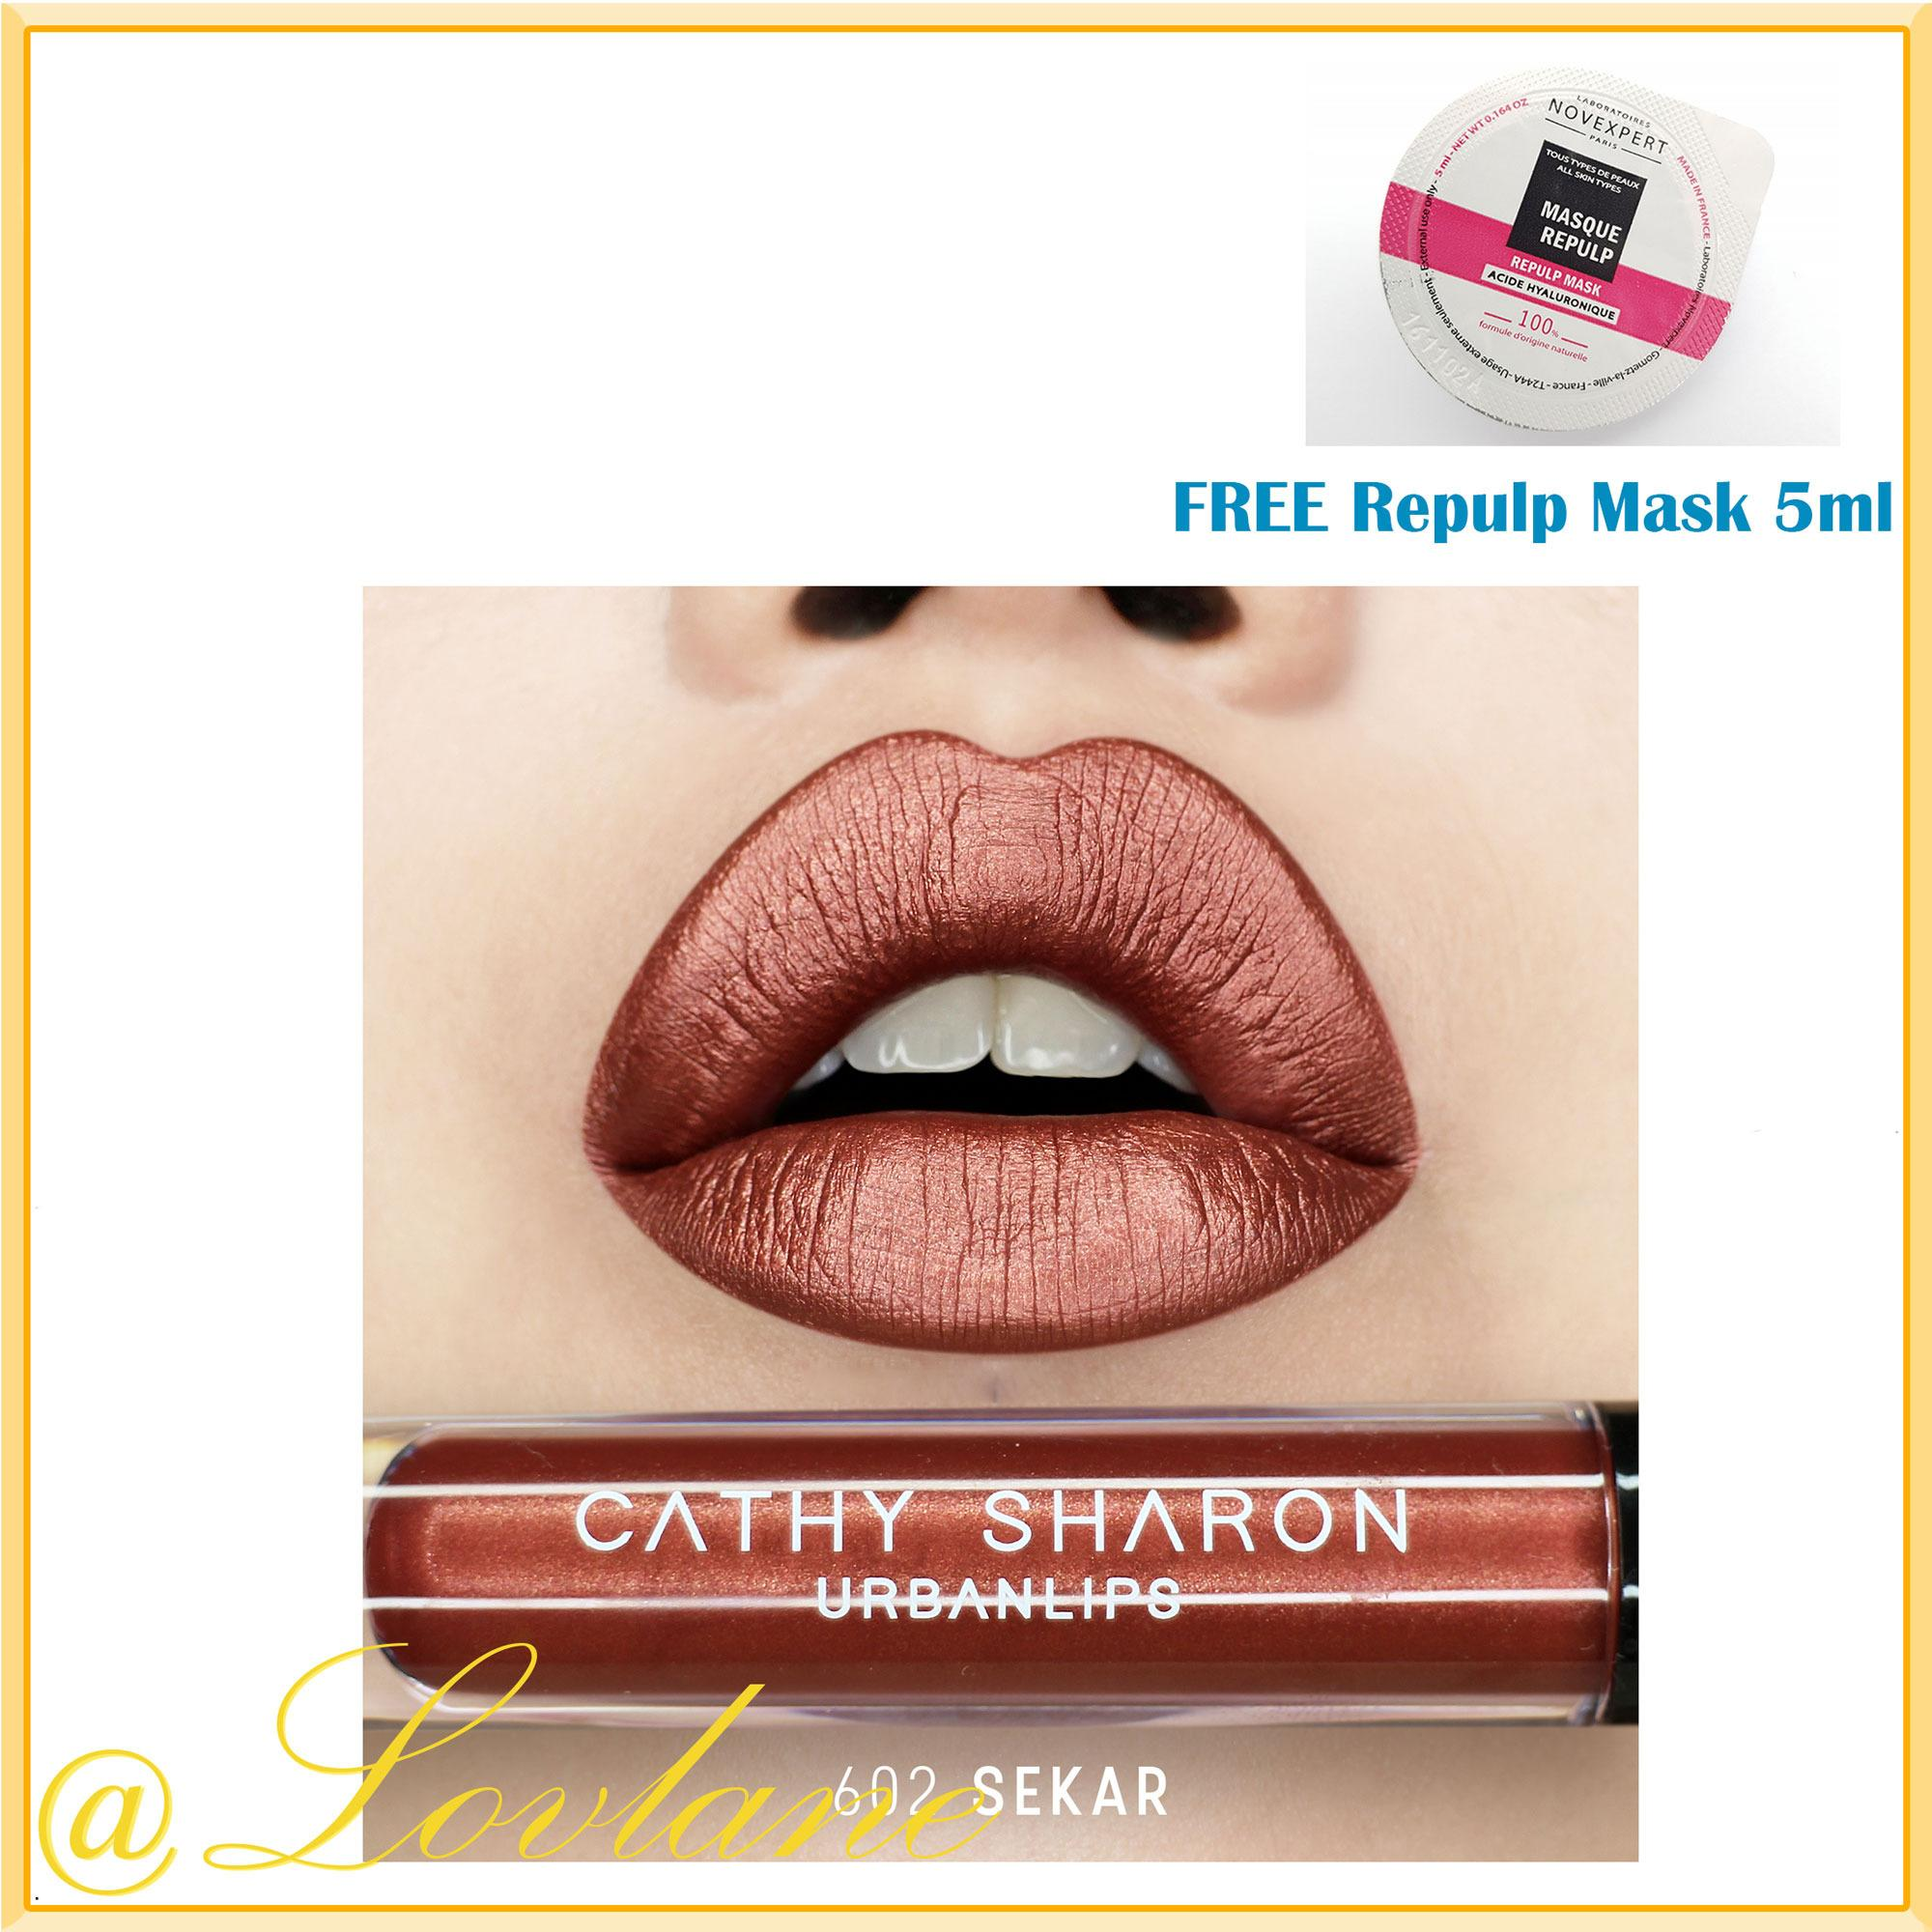 Review Cathy Sharon Urbanlips 602 Sekar Original Di Indonesia